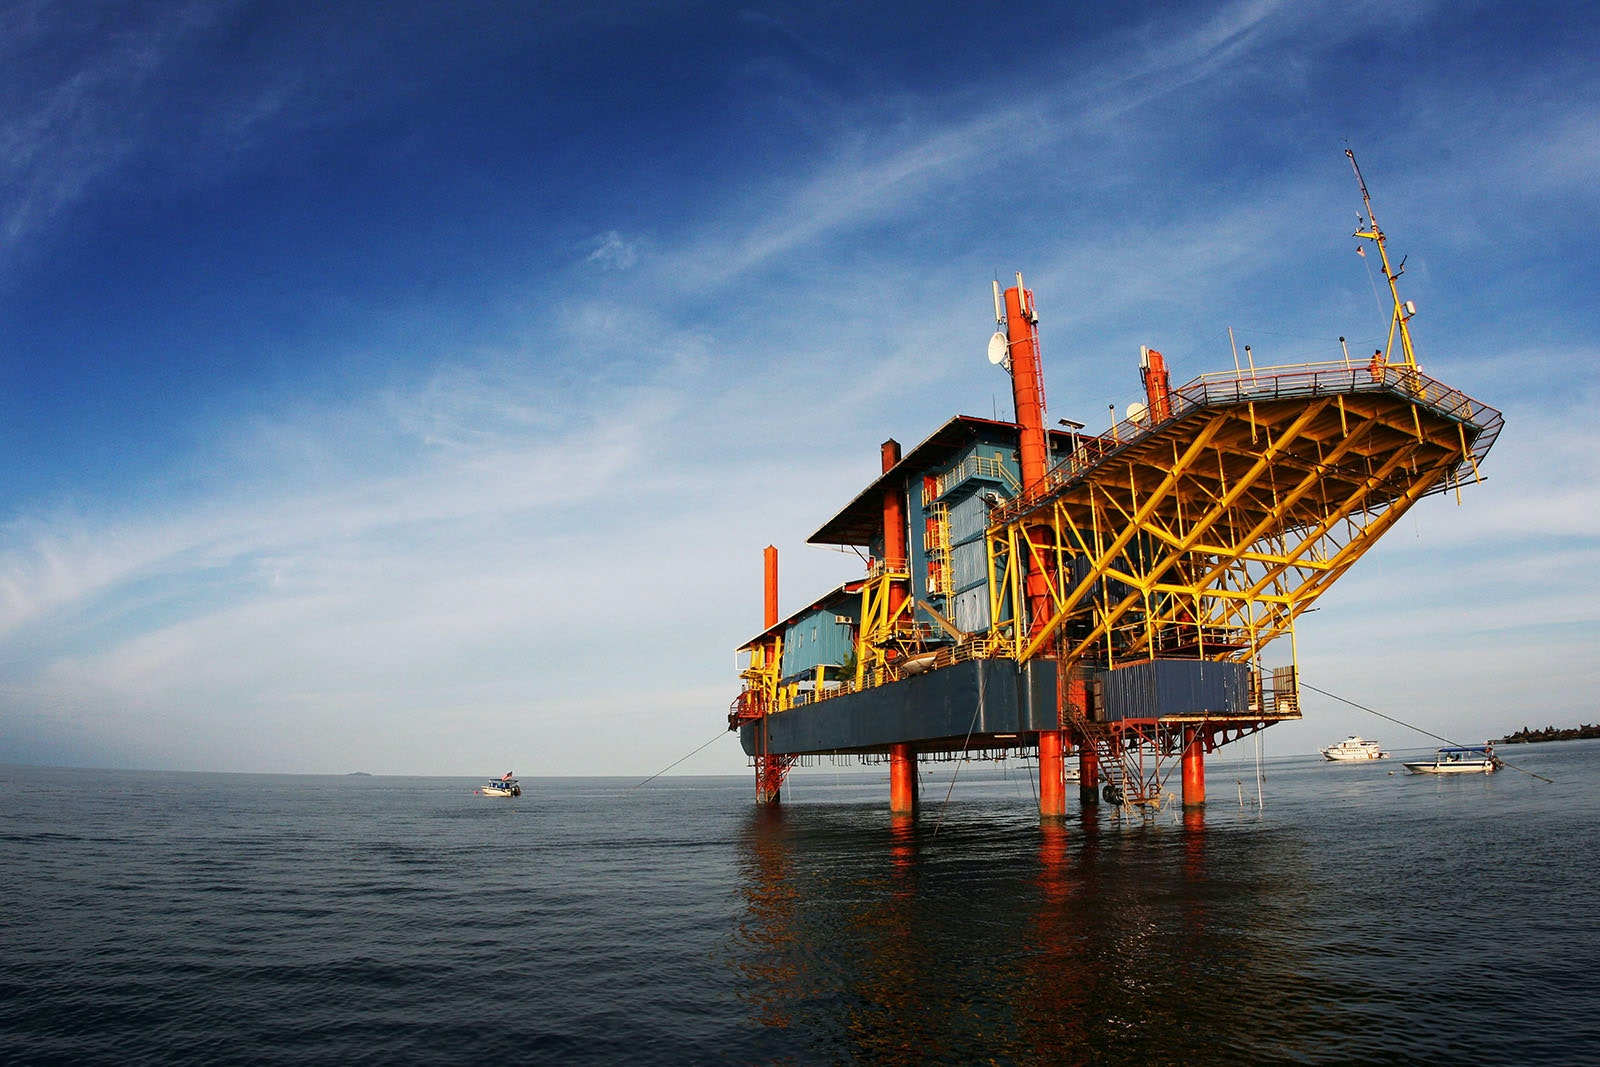 The Seaventures Dive Rig is a retired oil rig that was transformed into a dive resort.